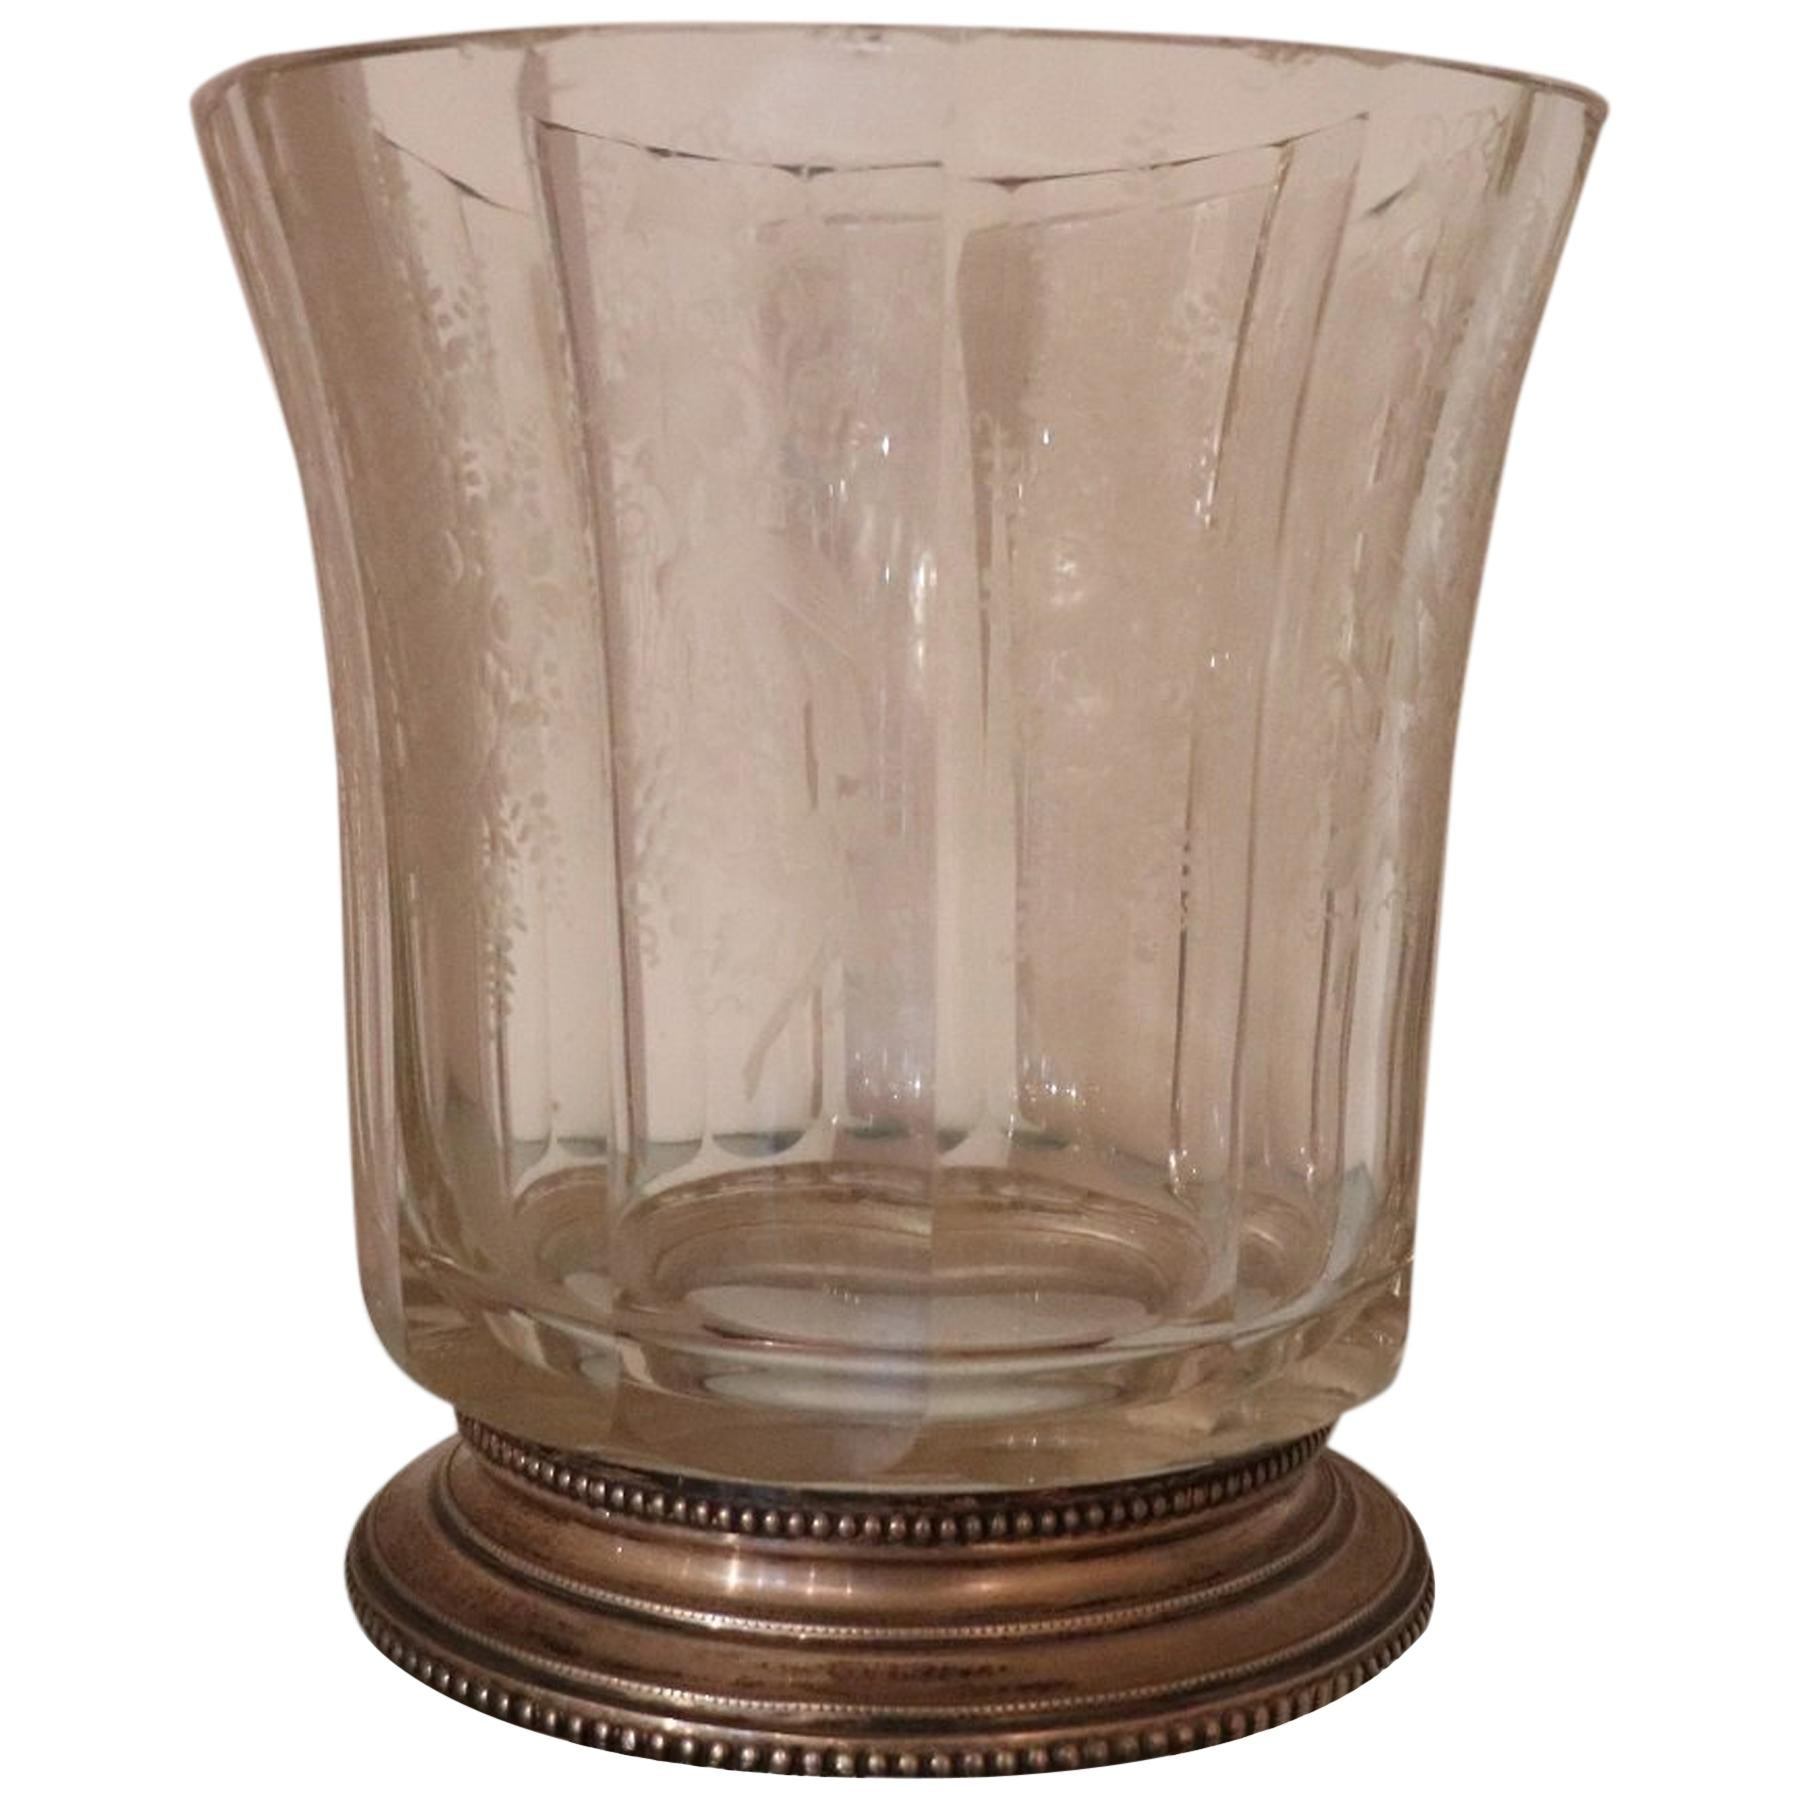 20th Century Italian Art Nouveau Crystal and Silver Vase, 1920s